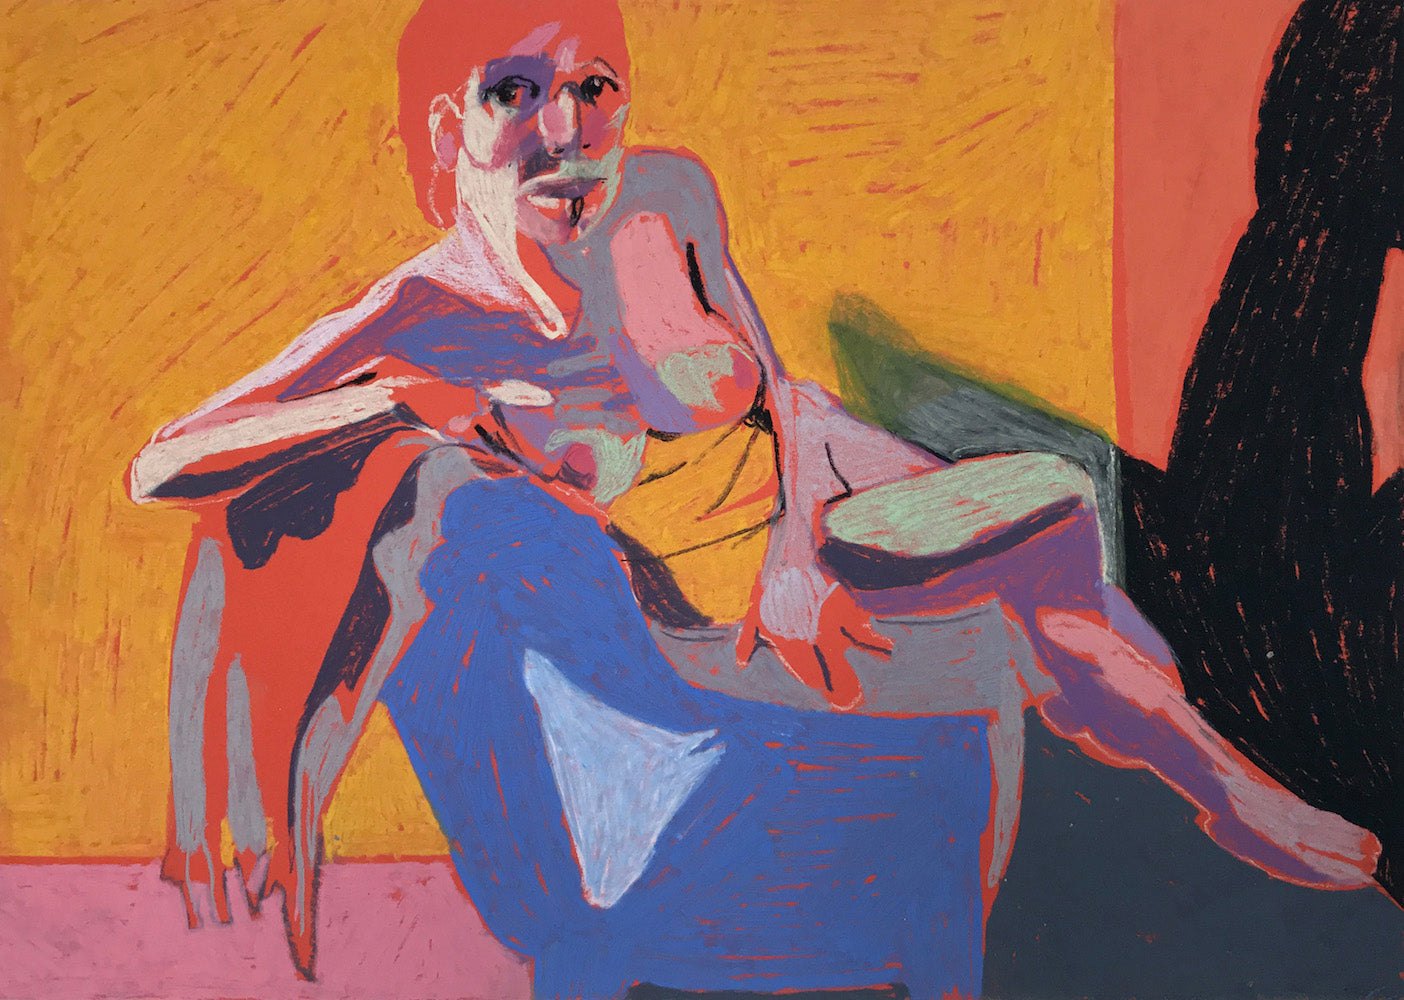 Nude on Orange with Yellow Wall | Hester Finch | Original Artwork |Pastel on Paper | Partnership Editions